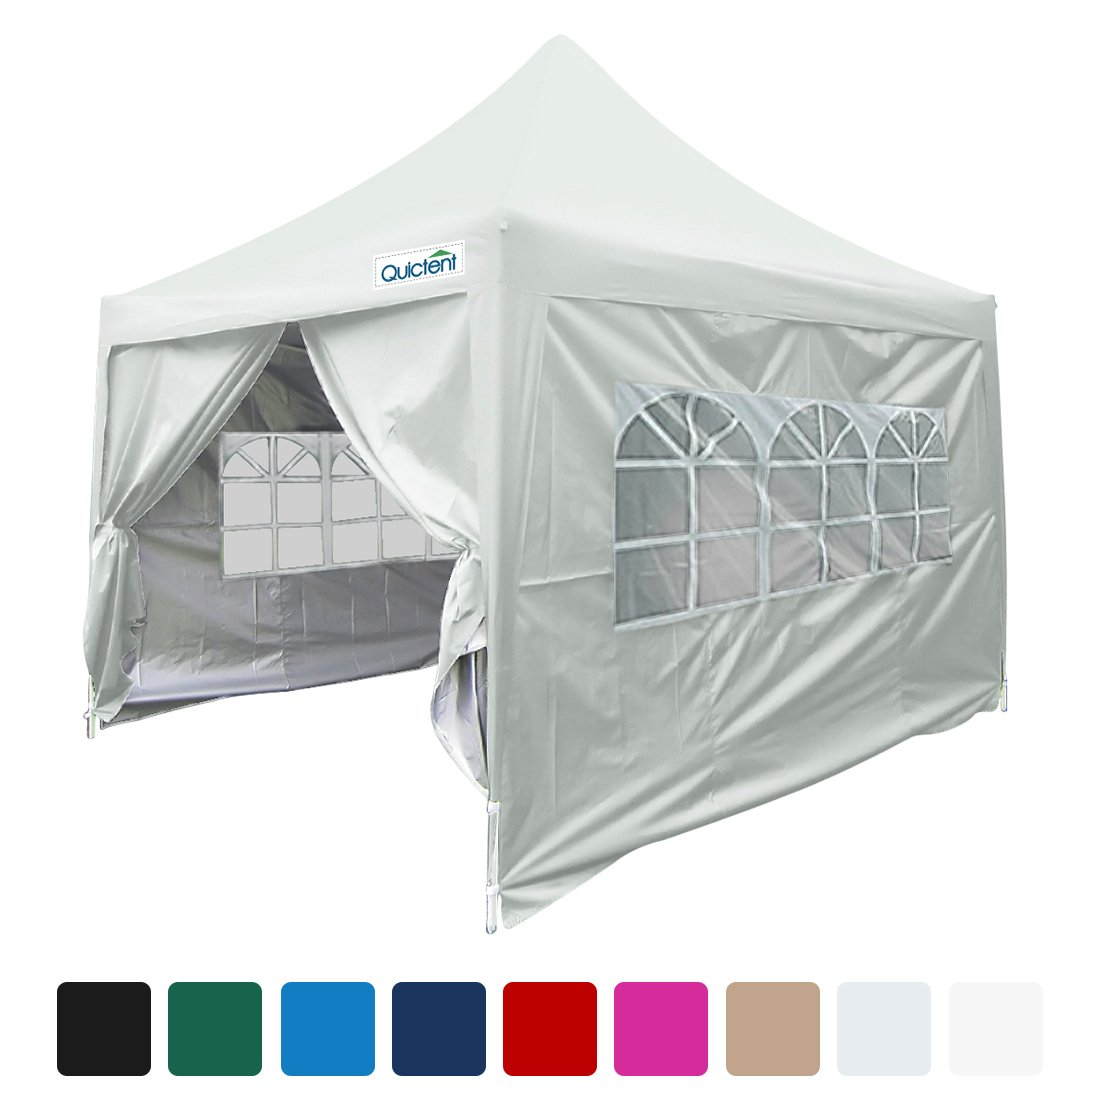 Quictent Silvox Waterproof 8x8' EZ Pop Up Canopy Gazebo Party Tent Portable Pyramid-roofed Waterproof-7 colors (Silver)